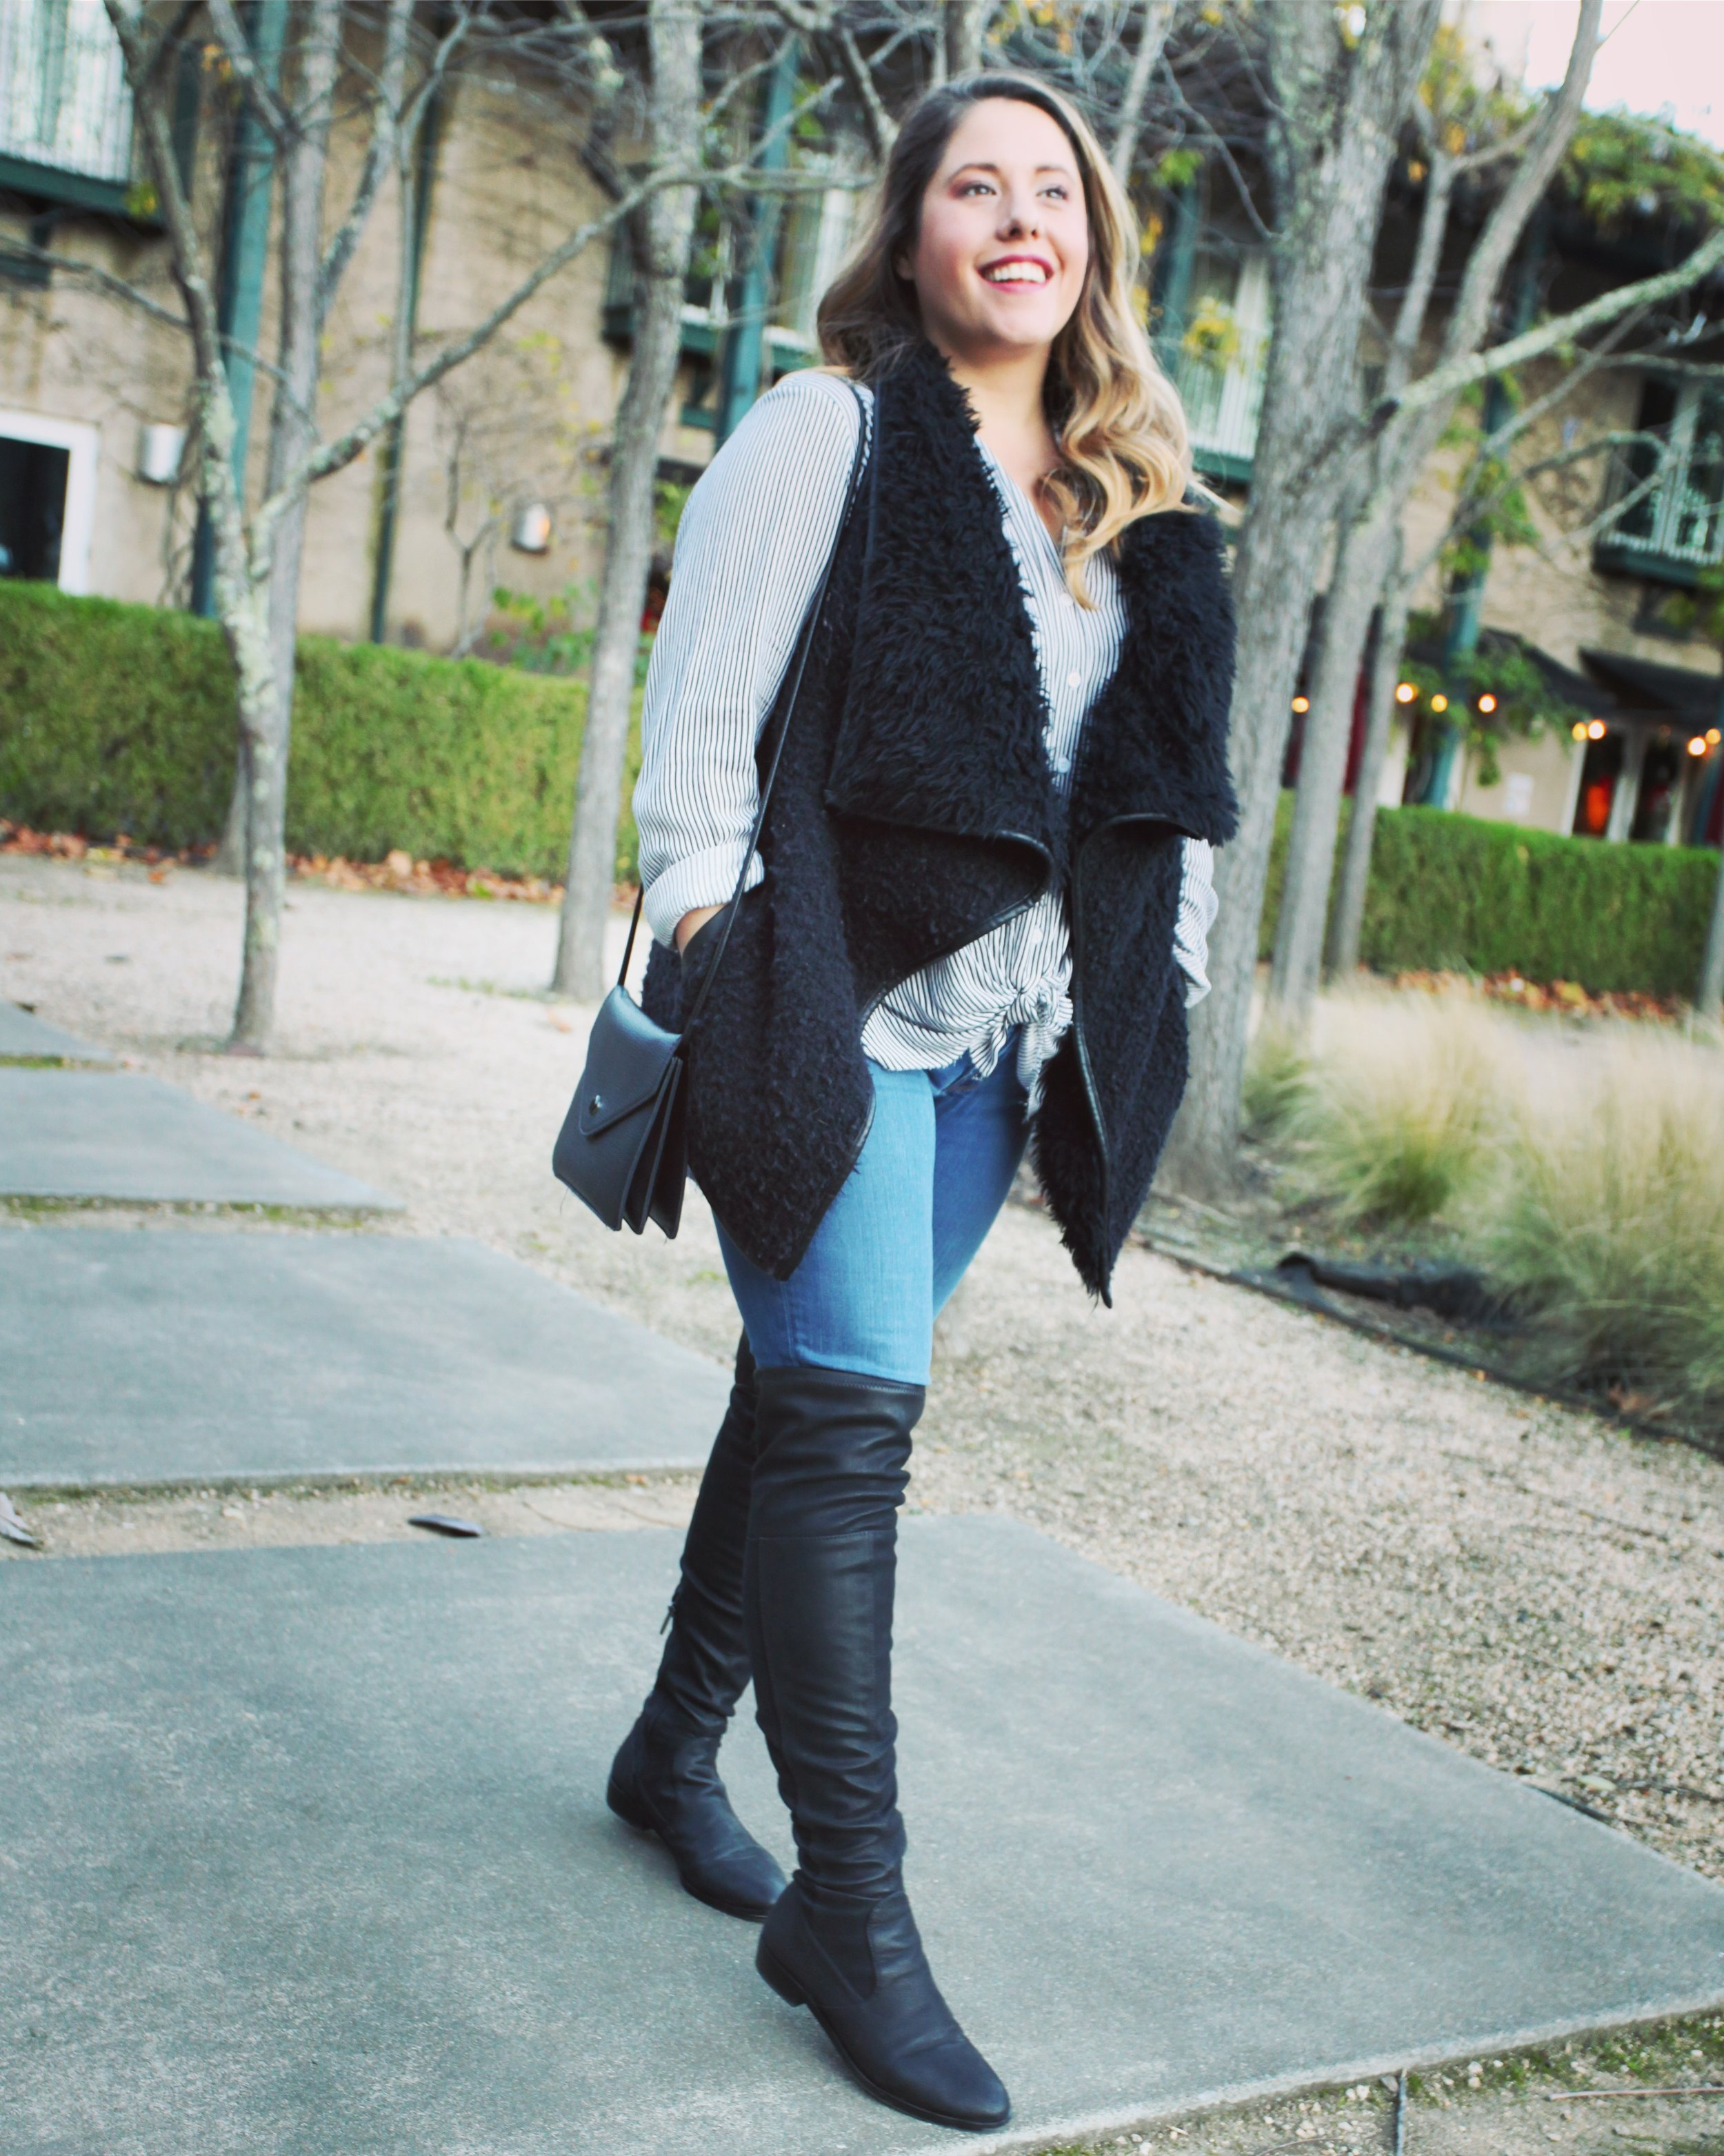 Details// Rue Stiic top, Forever 21 Fur Vest, Joes Jeans, Vince Camuto OTK Boots.   Photography: the majority of the photography used for this post was captured by the wonderfully talented Natalia Nicholas ! Check her out HERE !